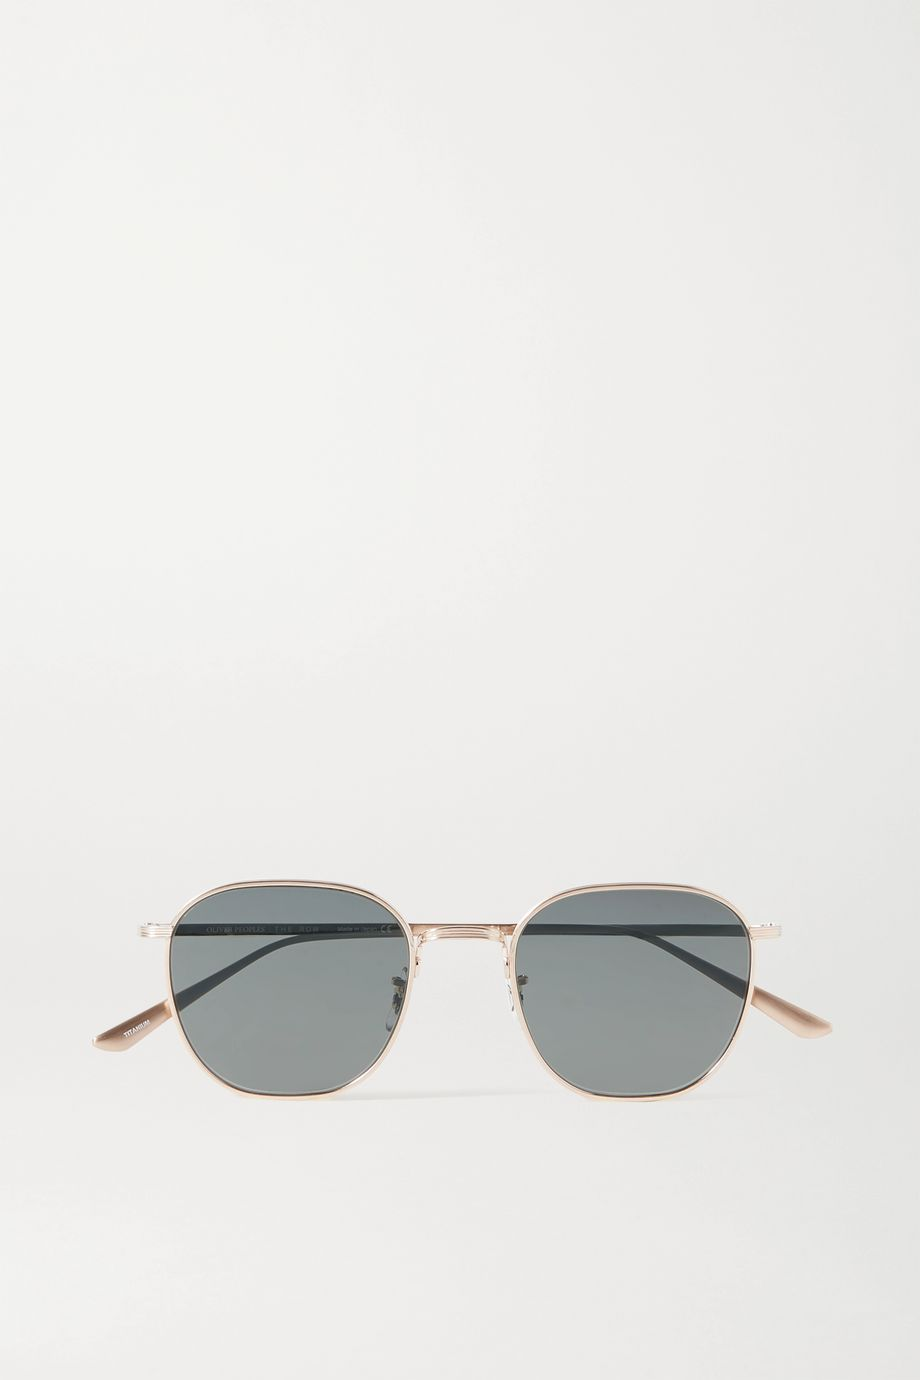 The Row + Oliver Peoples Board Meeting 2 goldfarbene Sonnenbrille mit rundem Rahmen